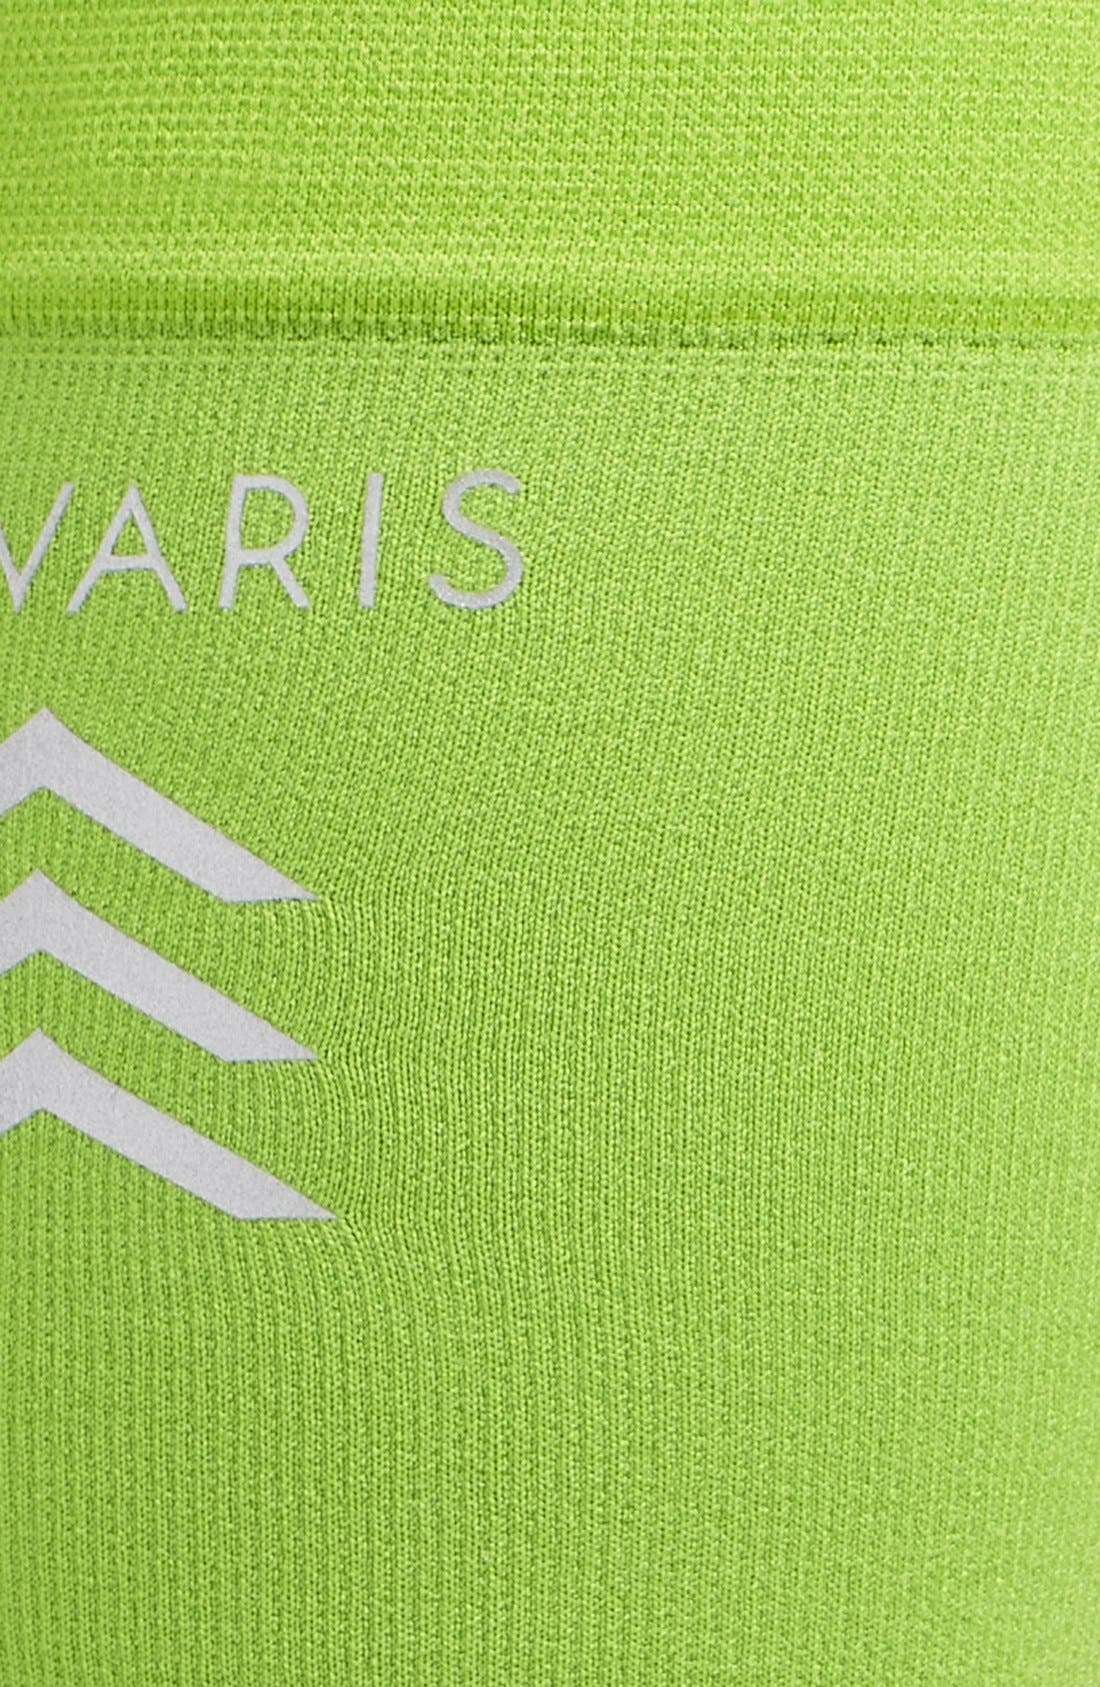 'Sports' Graduated Compression Performance Calf Sleeve,                             Alternate thumbnail 3, color,                             Lime